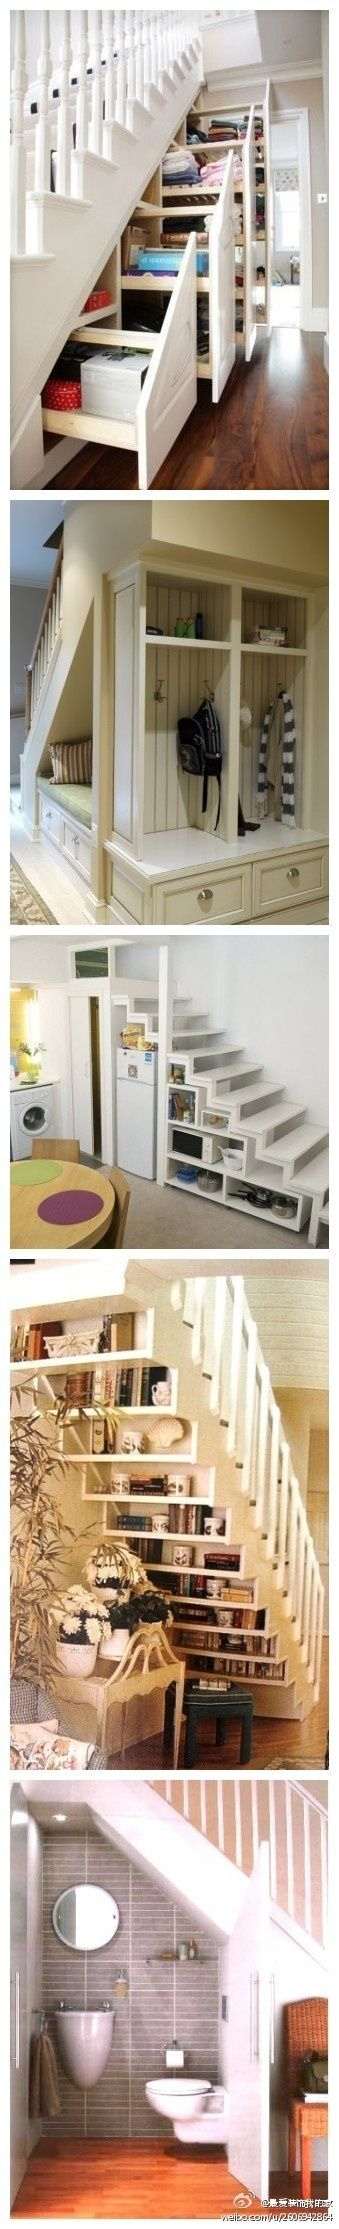 Awesome under the stairs ideas! Now I just need a home with stairs. :)